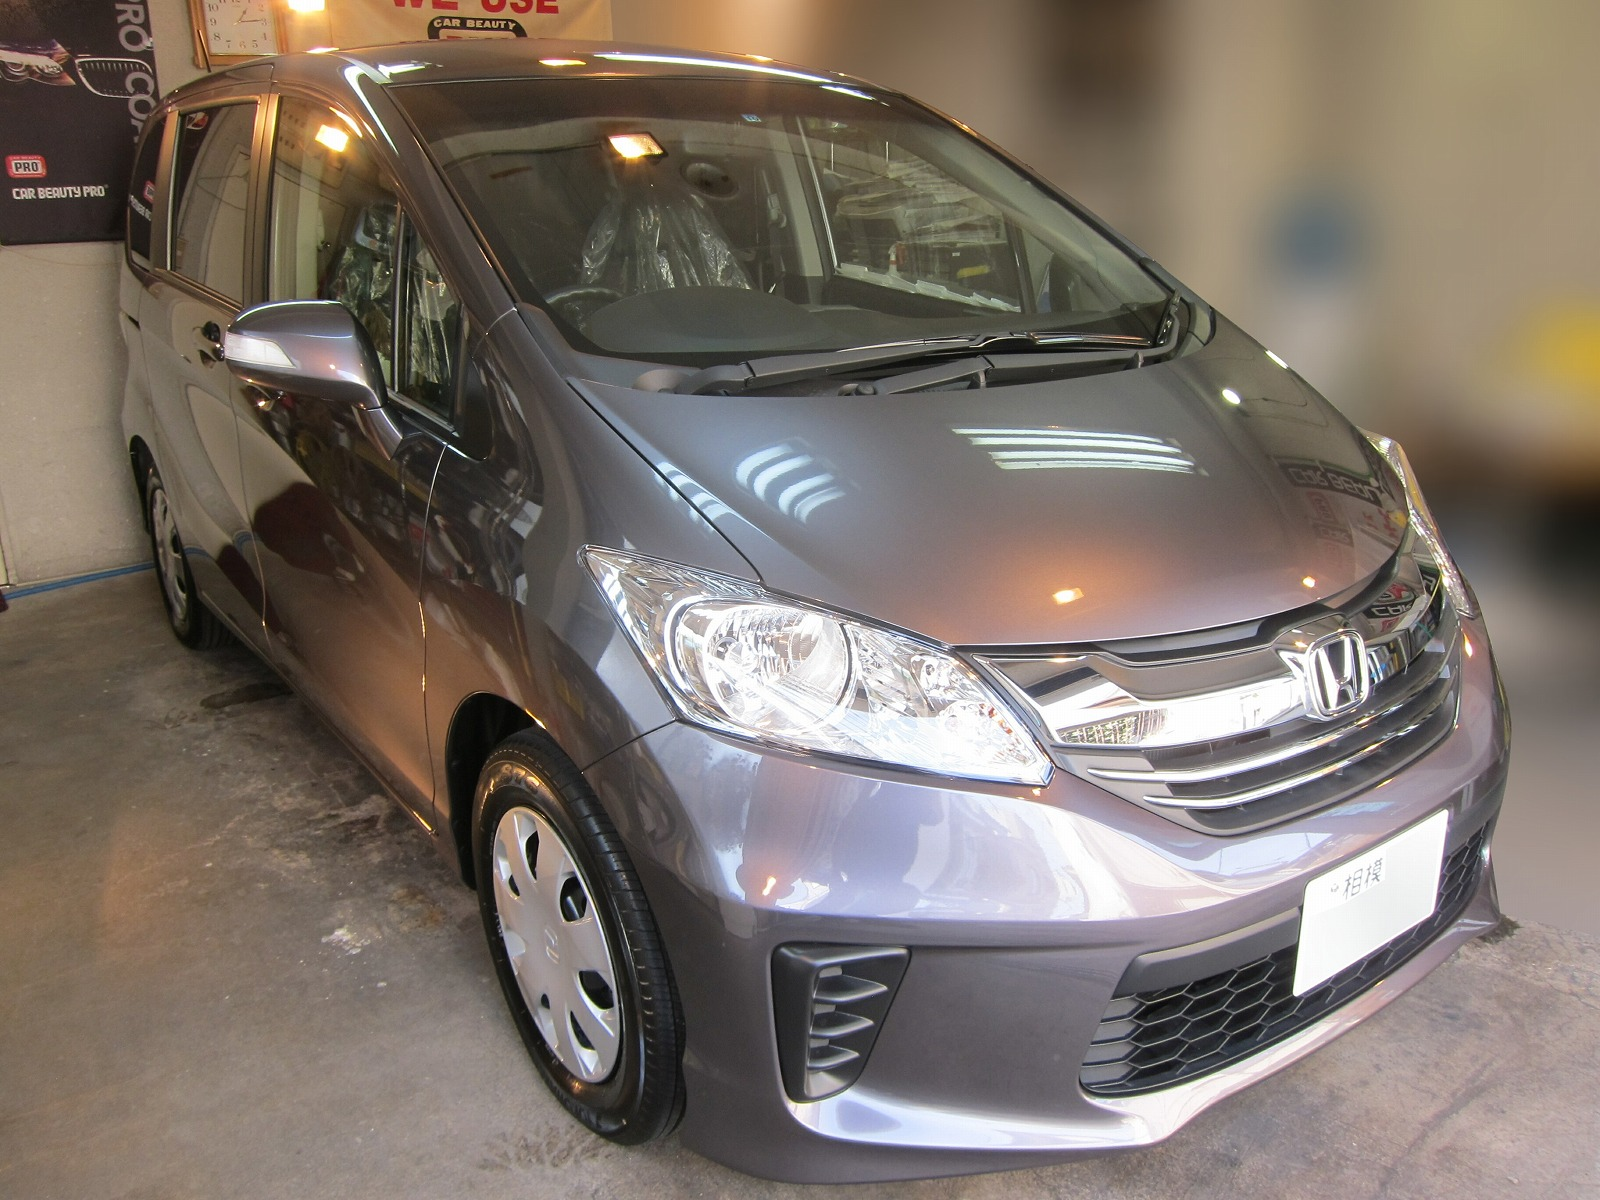 20161107-honda-freed-01